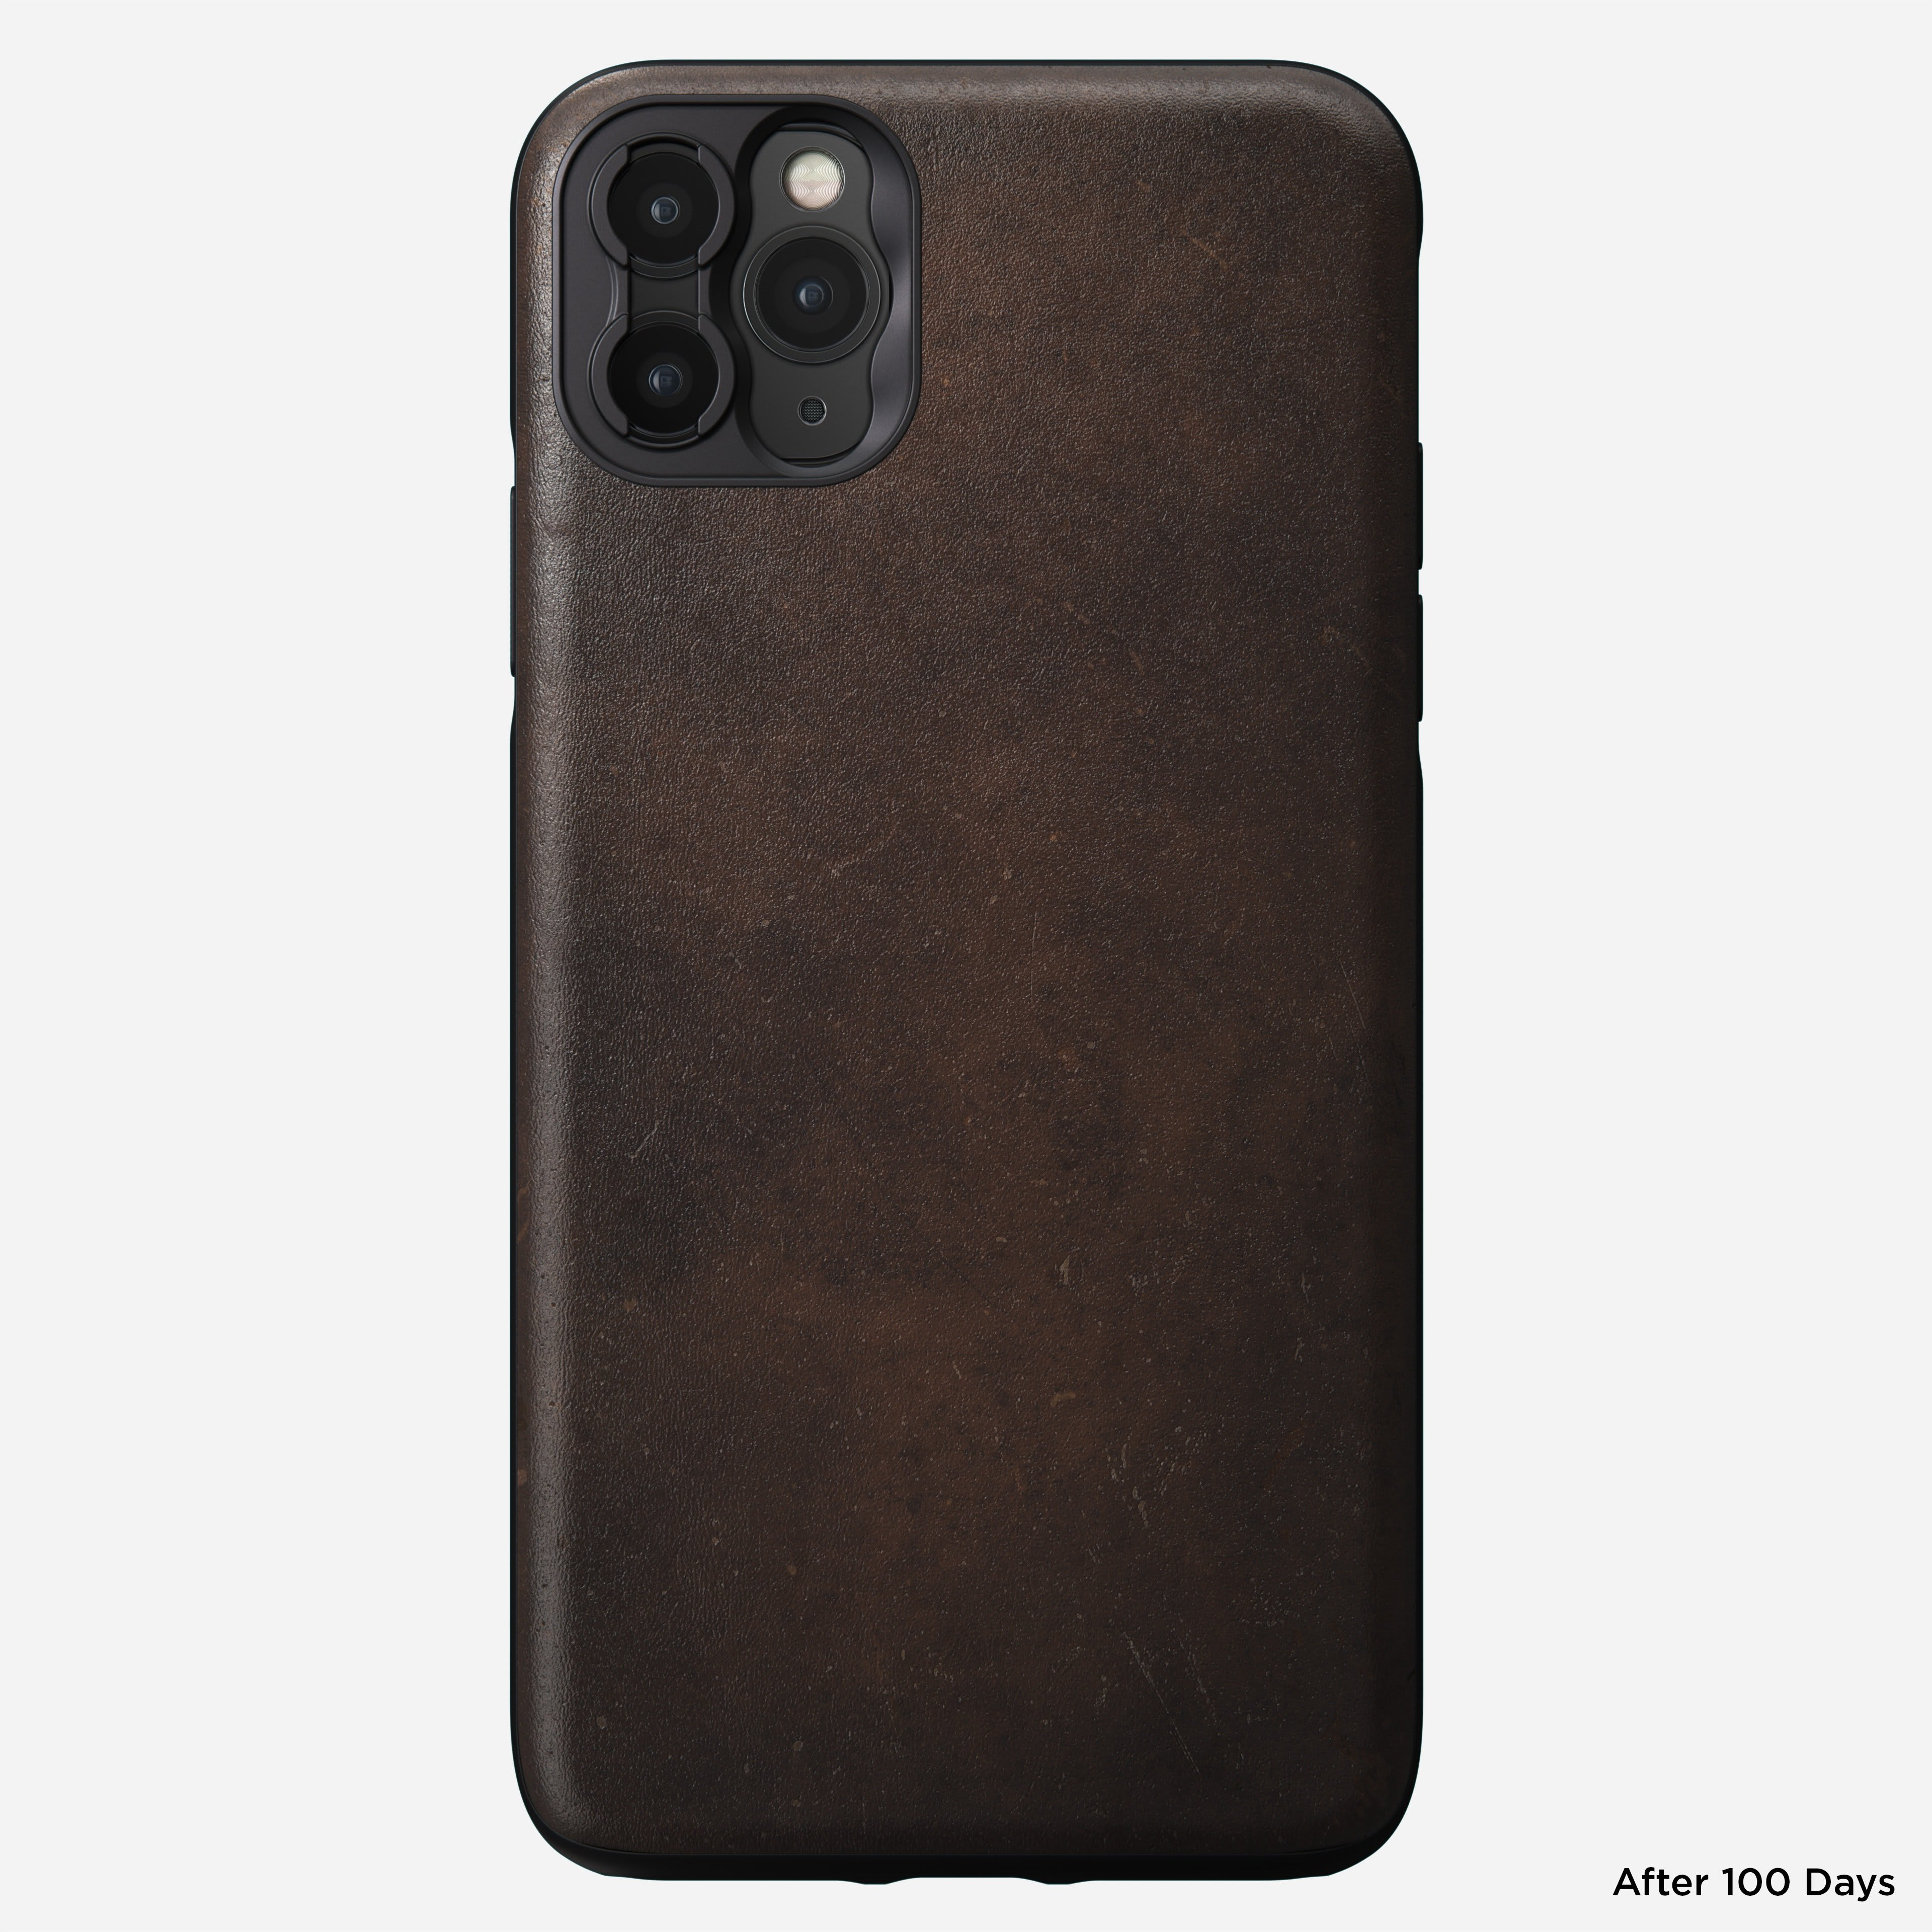 Rugged case rustic brown moment 11 pro max